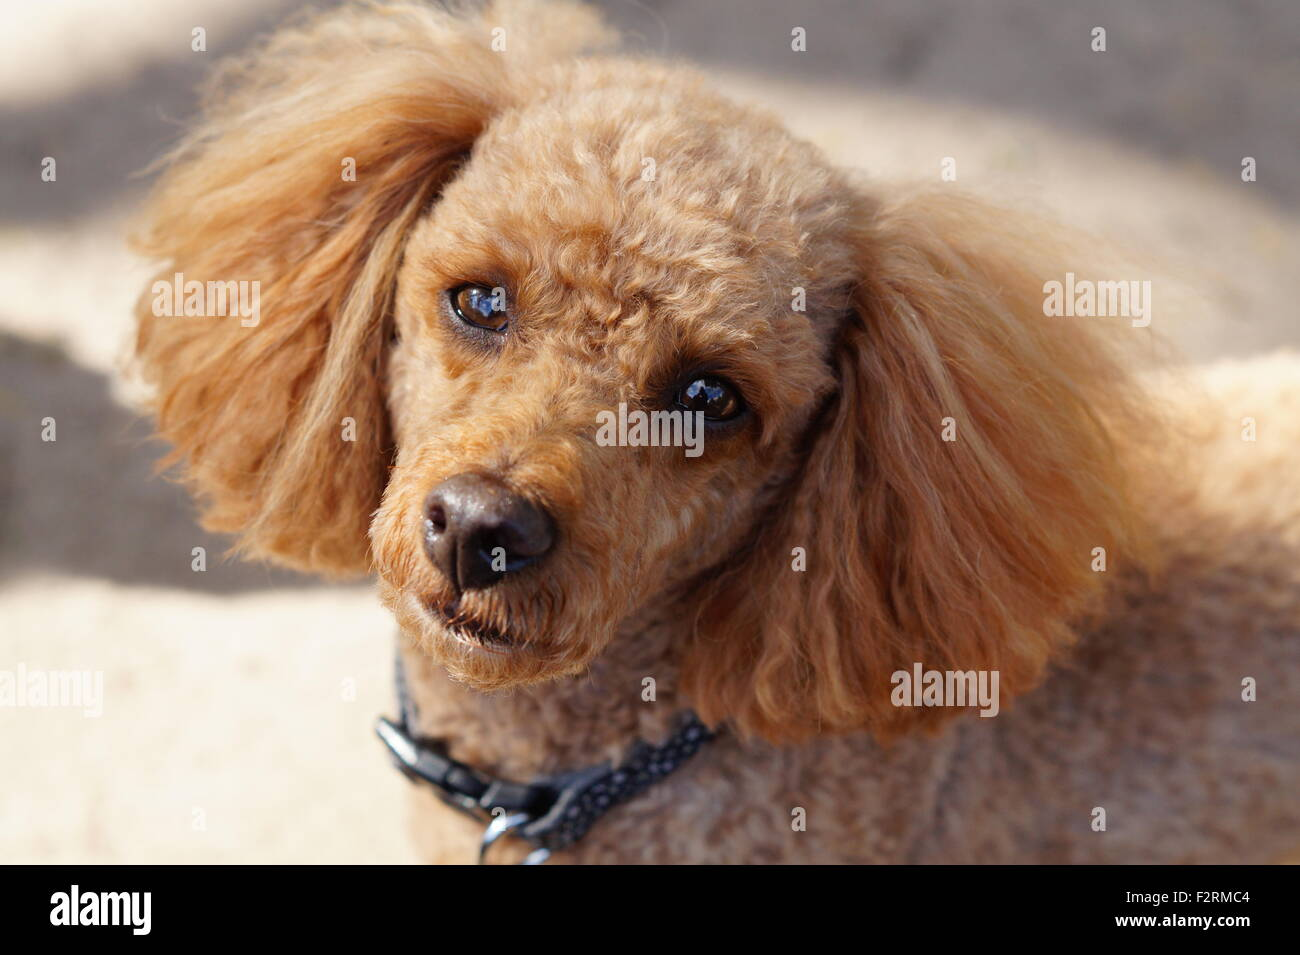 Close up of Red Toy Poodle looking at the Camera with Puppy Eyes - Stock Image